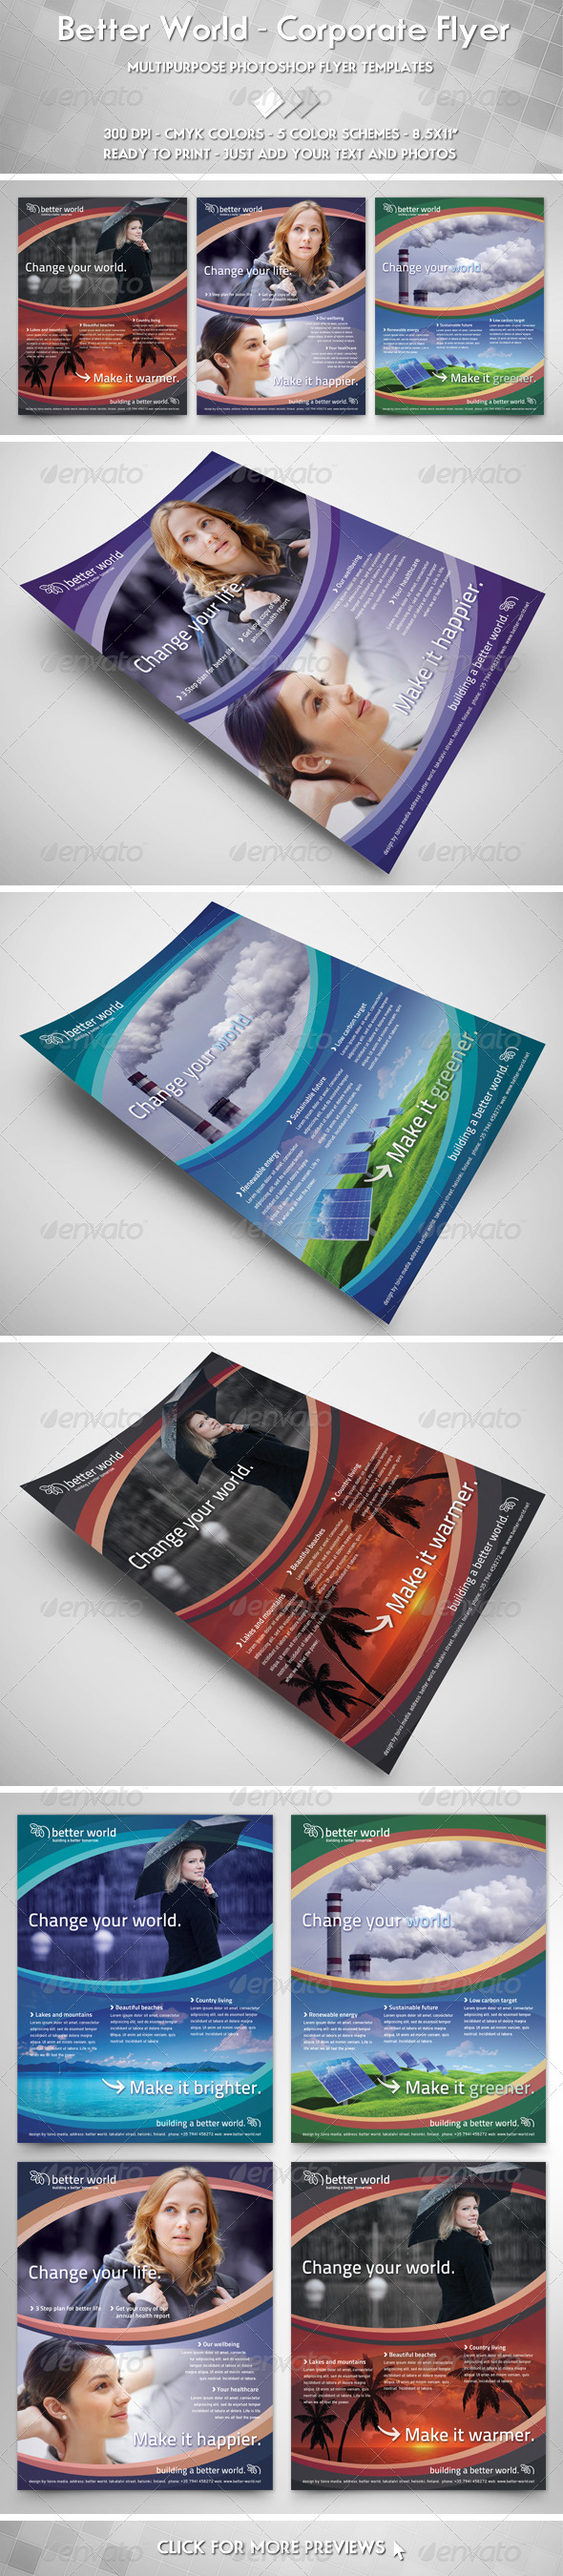 GraphicRiver Better World Flyer 3606936